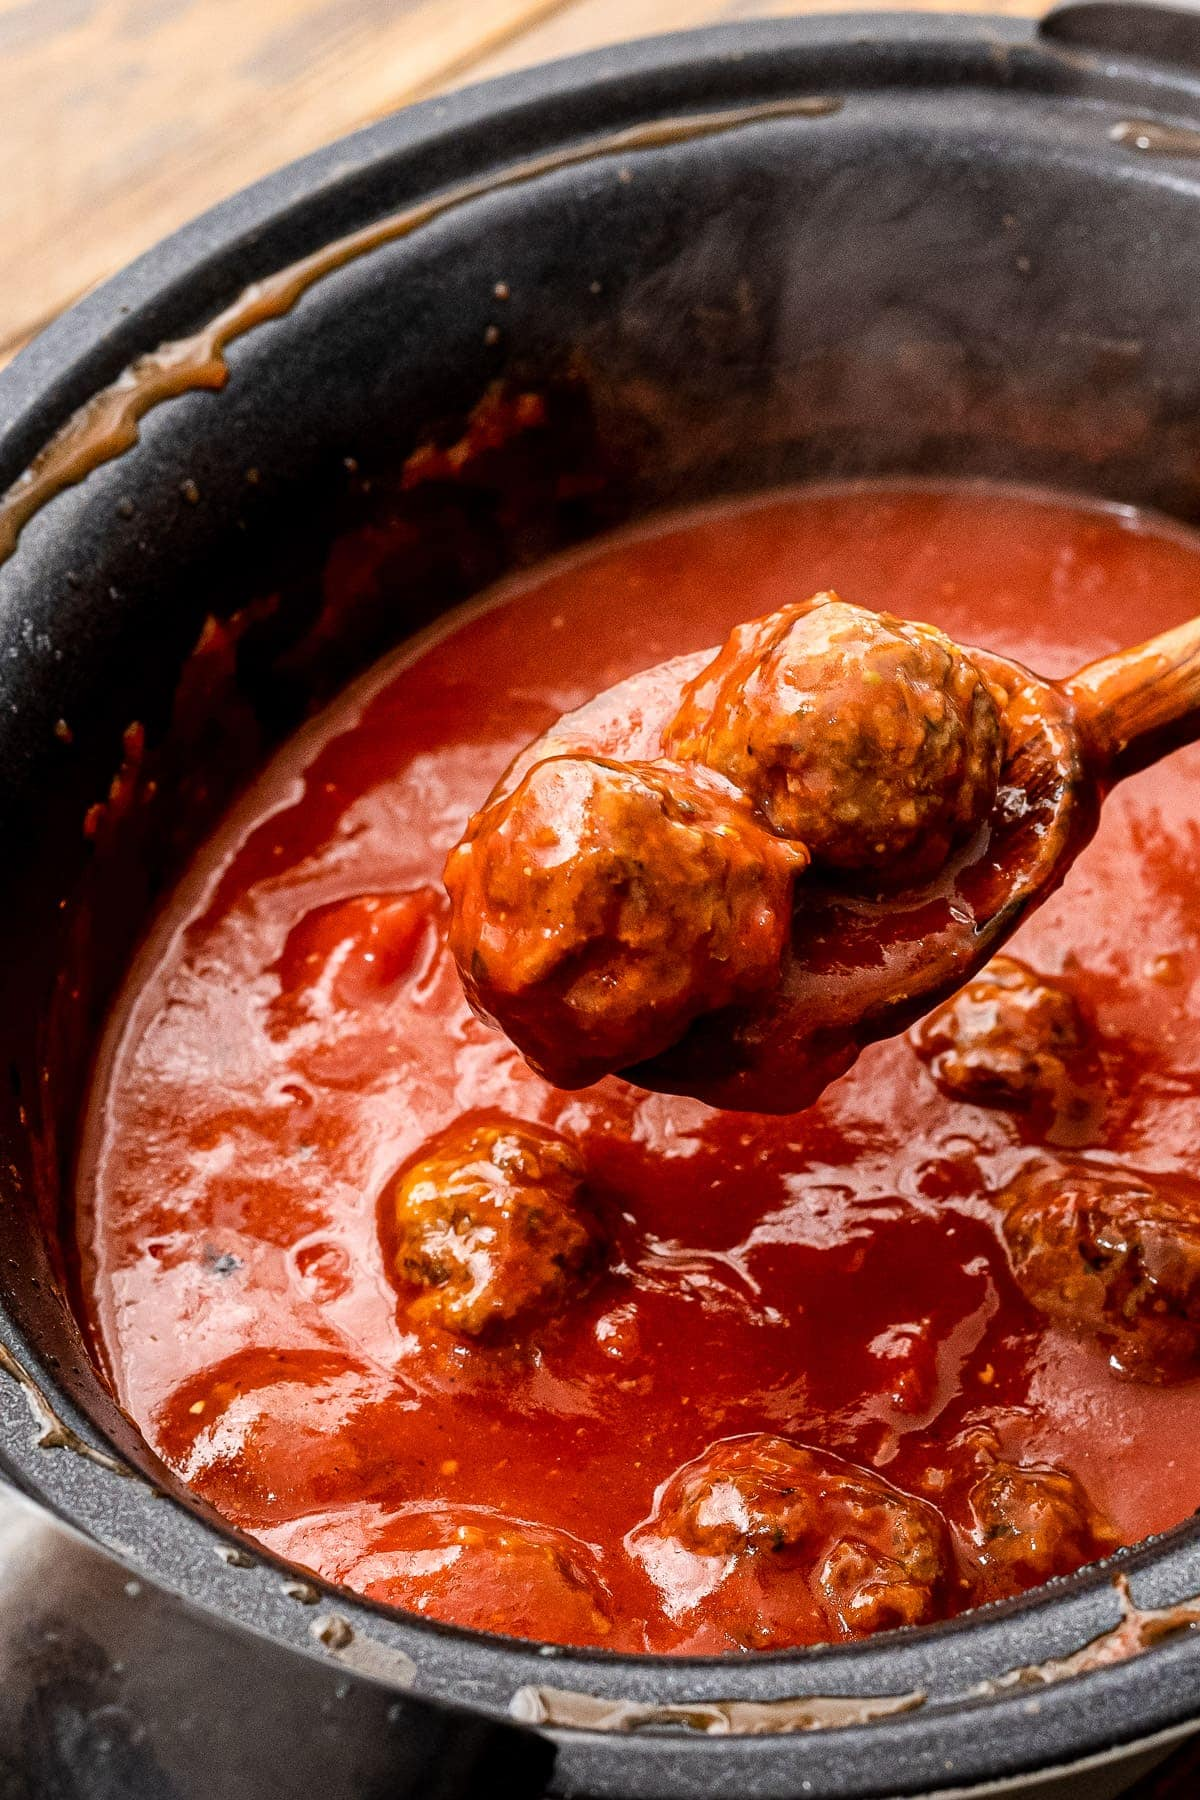 Wooden spoon scooping meatballs out of crock pot with spaghetti sauce in it.